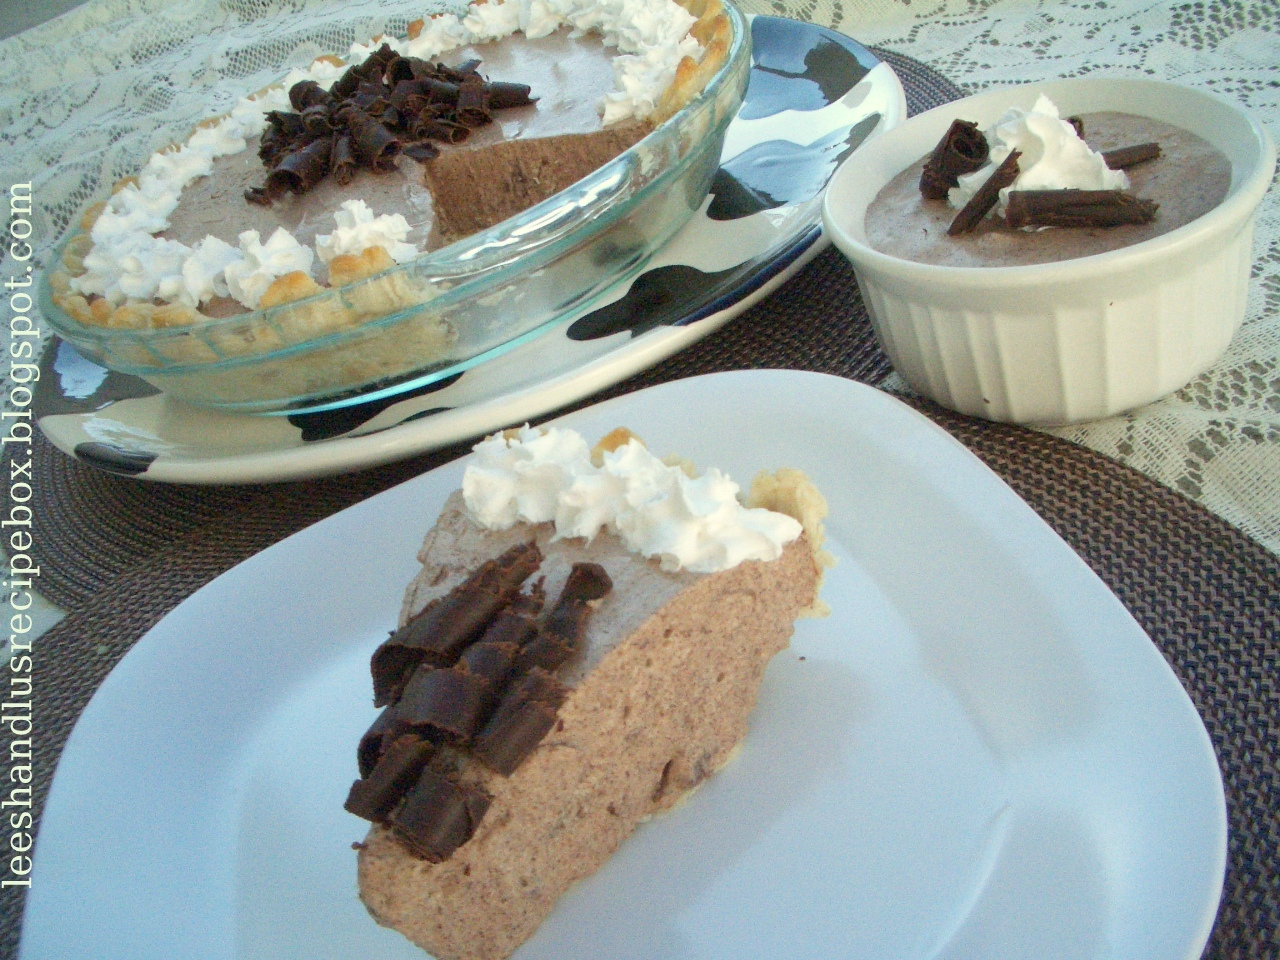 ... Box: Heavenly Chocolate Mousse {in a Pie Shell or Single Dishes